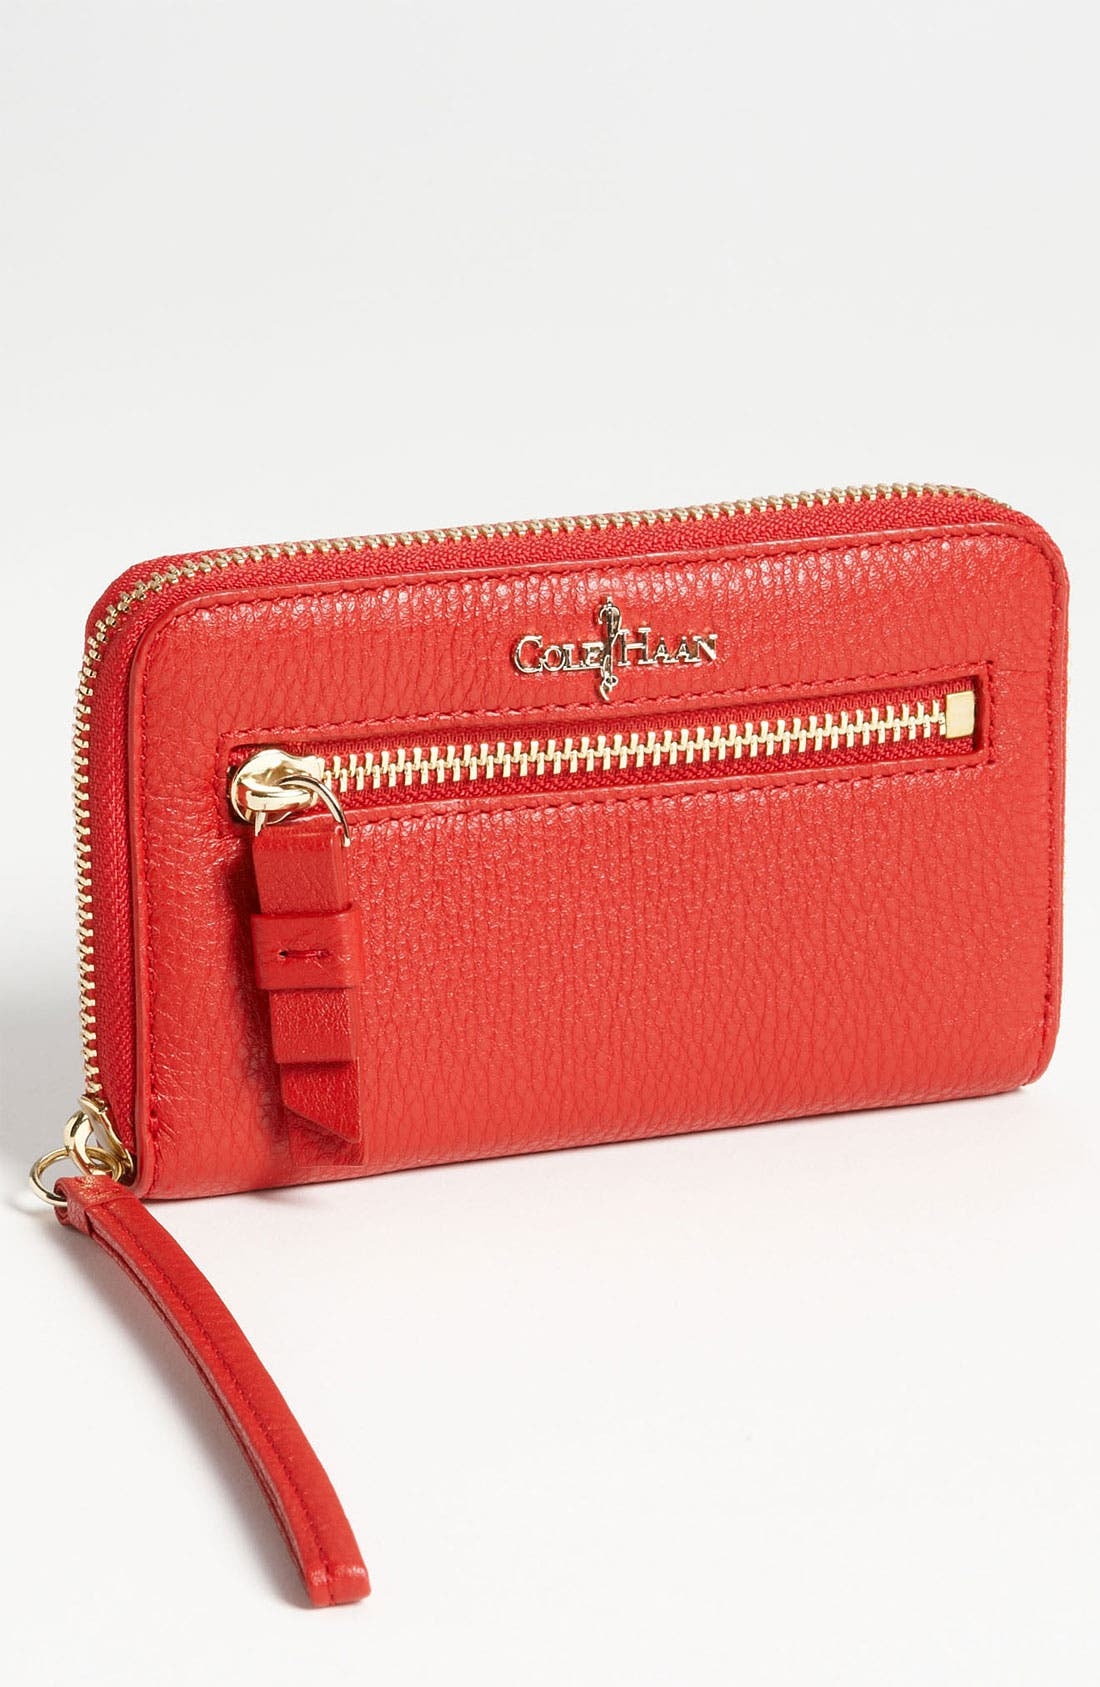 Alternate Image 1 Selected - Cole Haan 'Linley' Phone Wristlet